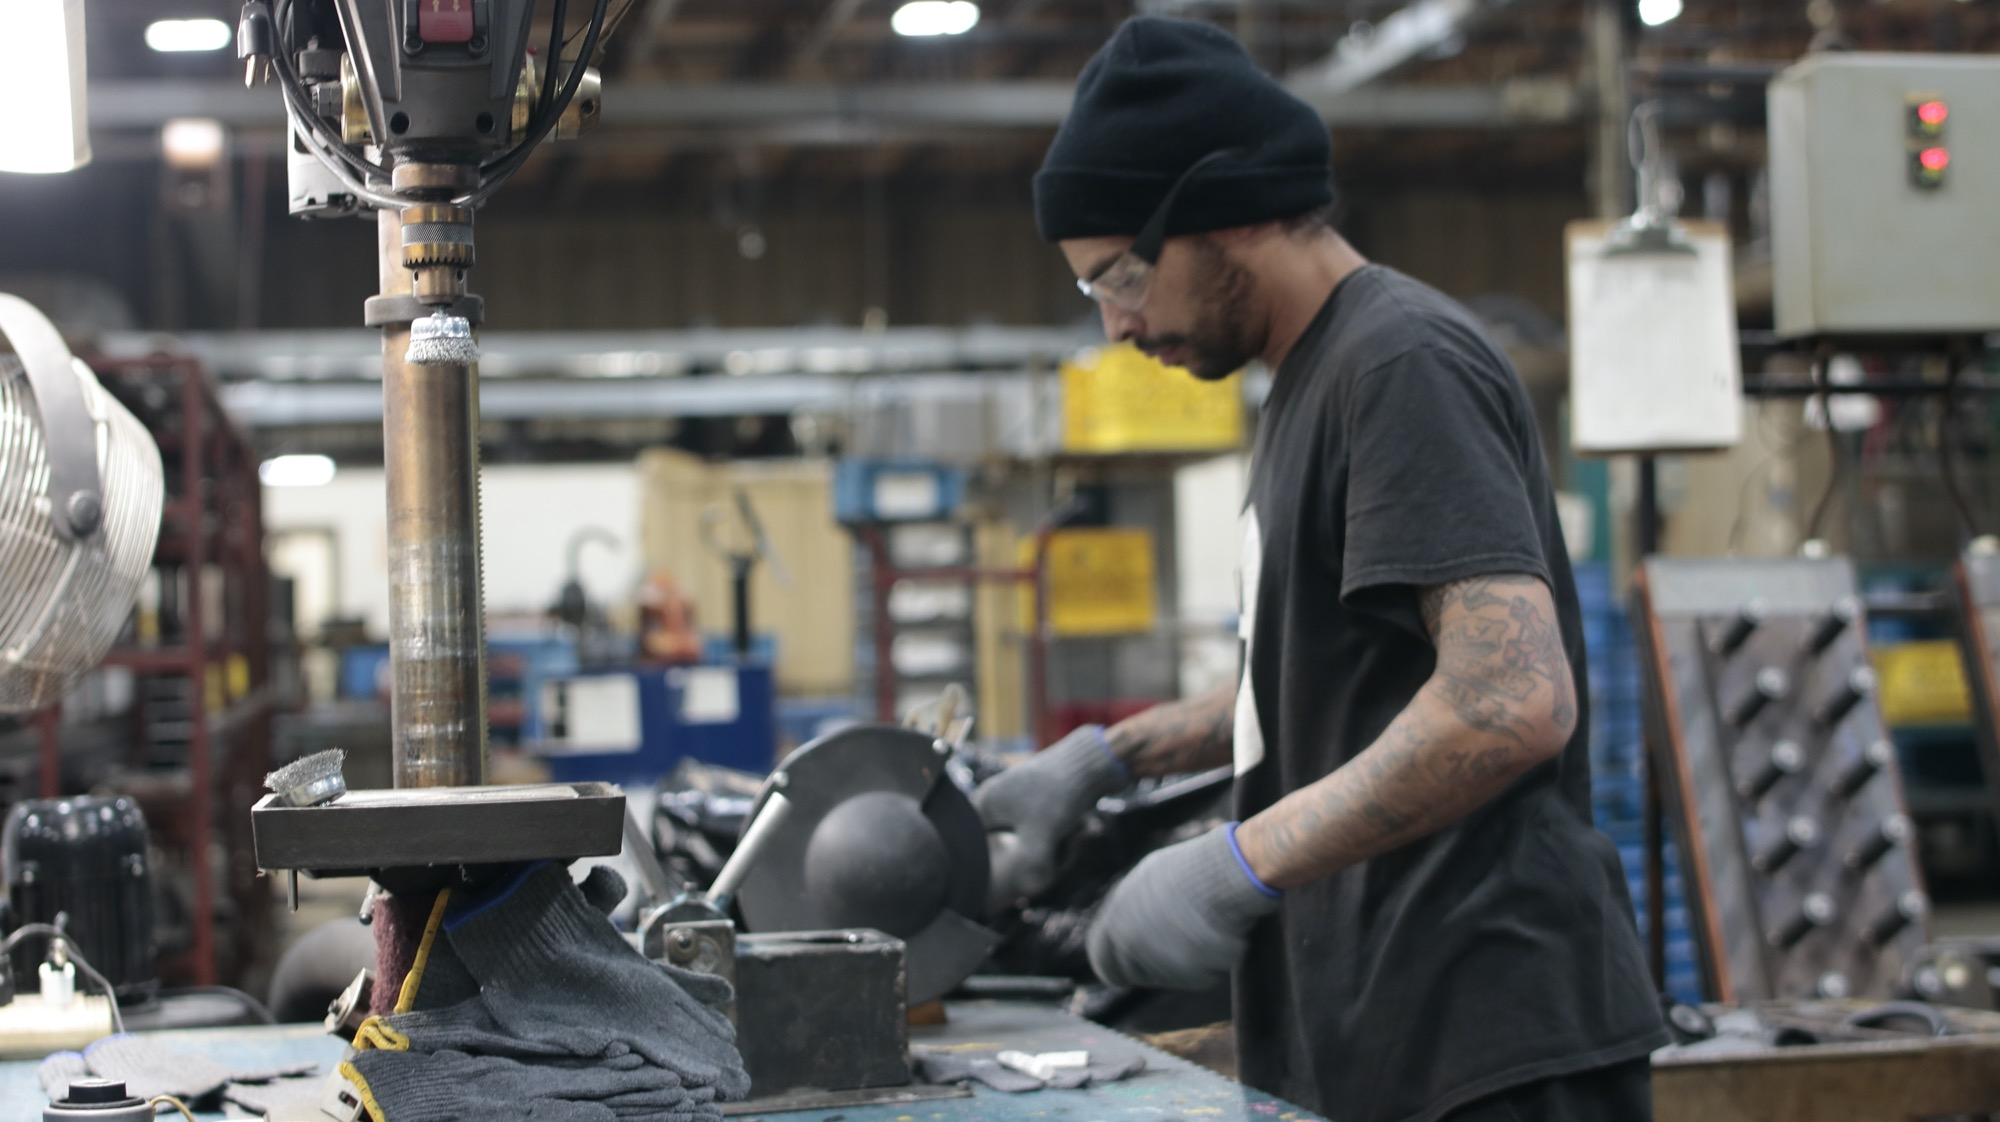 Local Manufacturing Supports National Security and Creates Self-Sufficient Communities